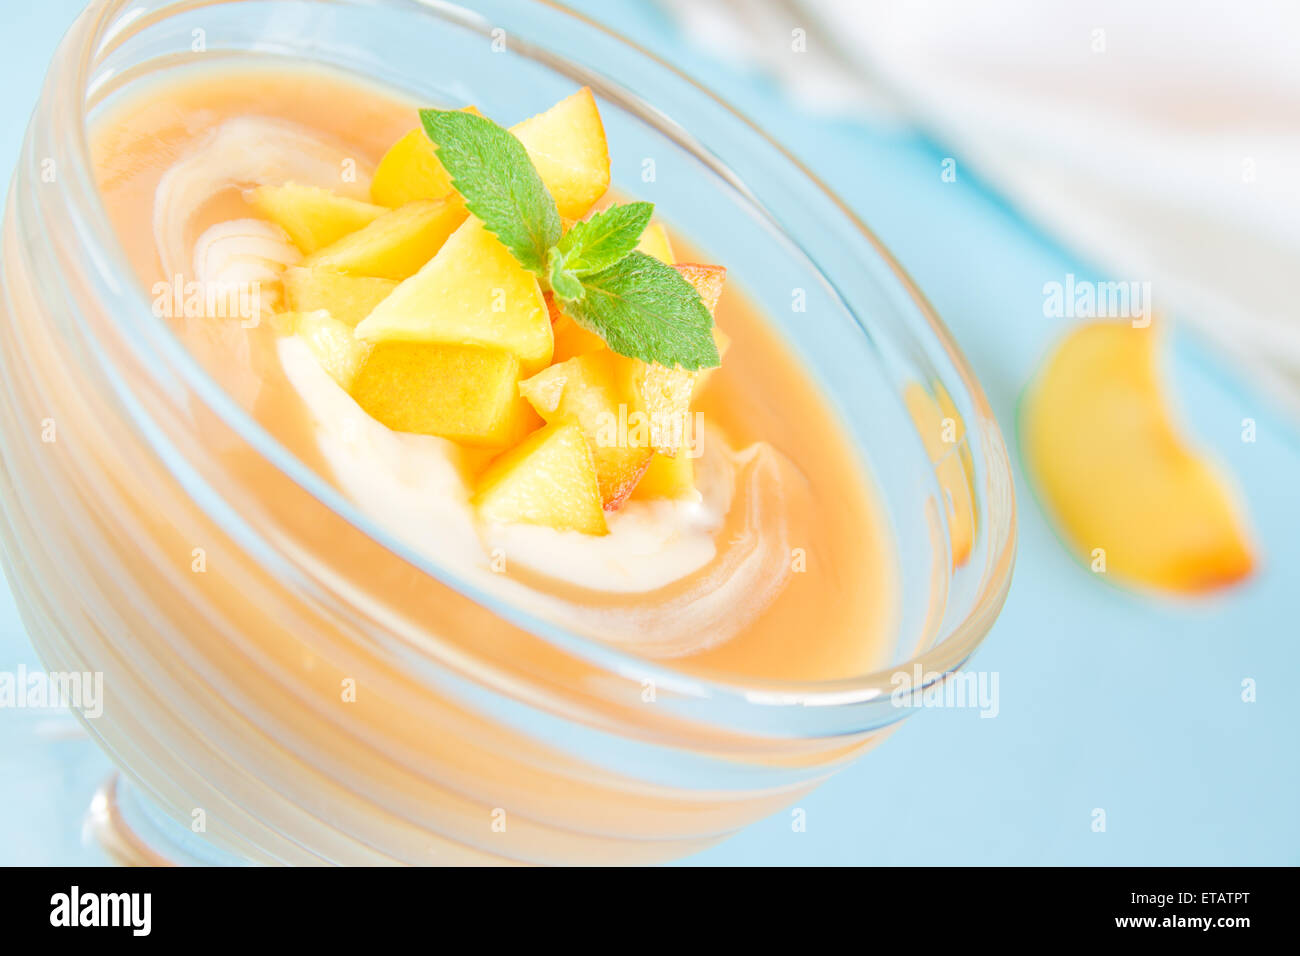 Peach dessert (mousse) with yogurt and mint on blue background - Stock Image